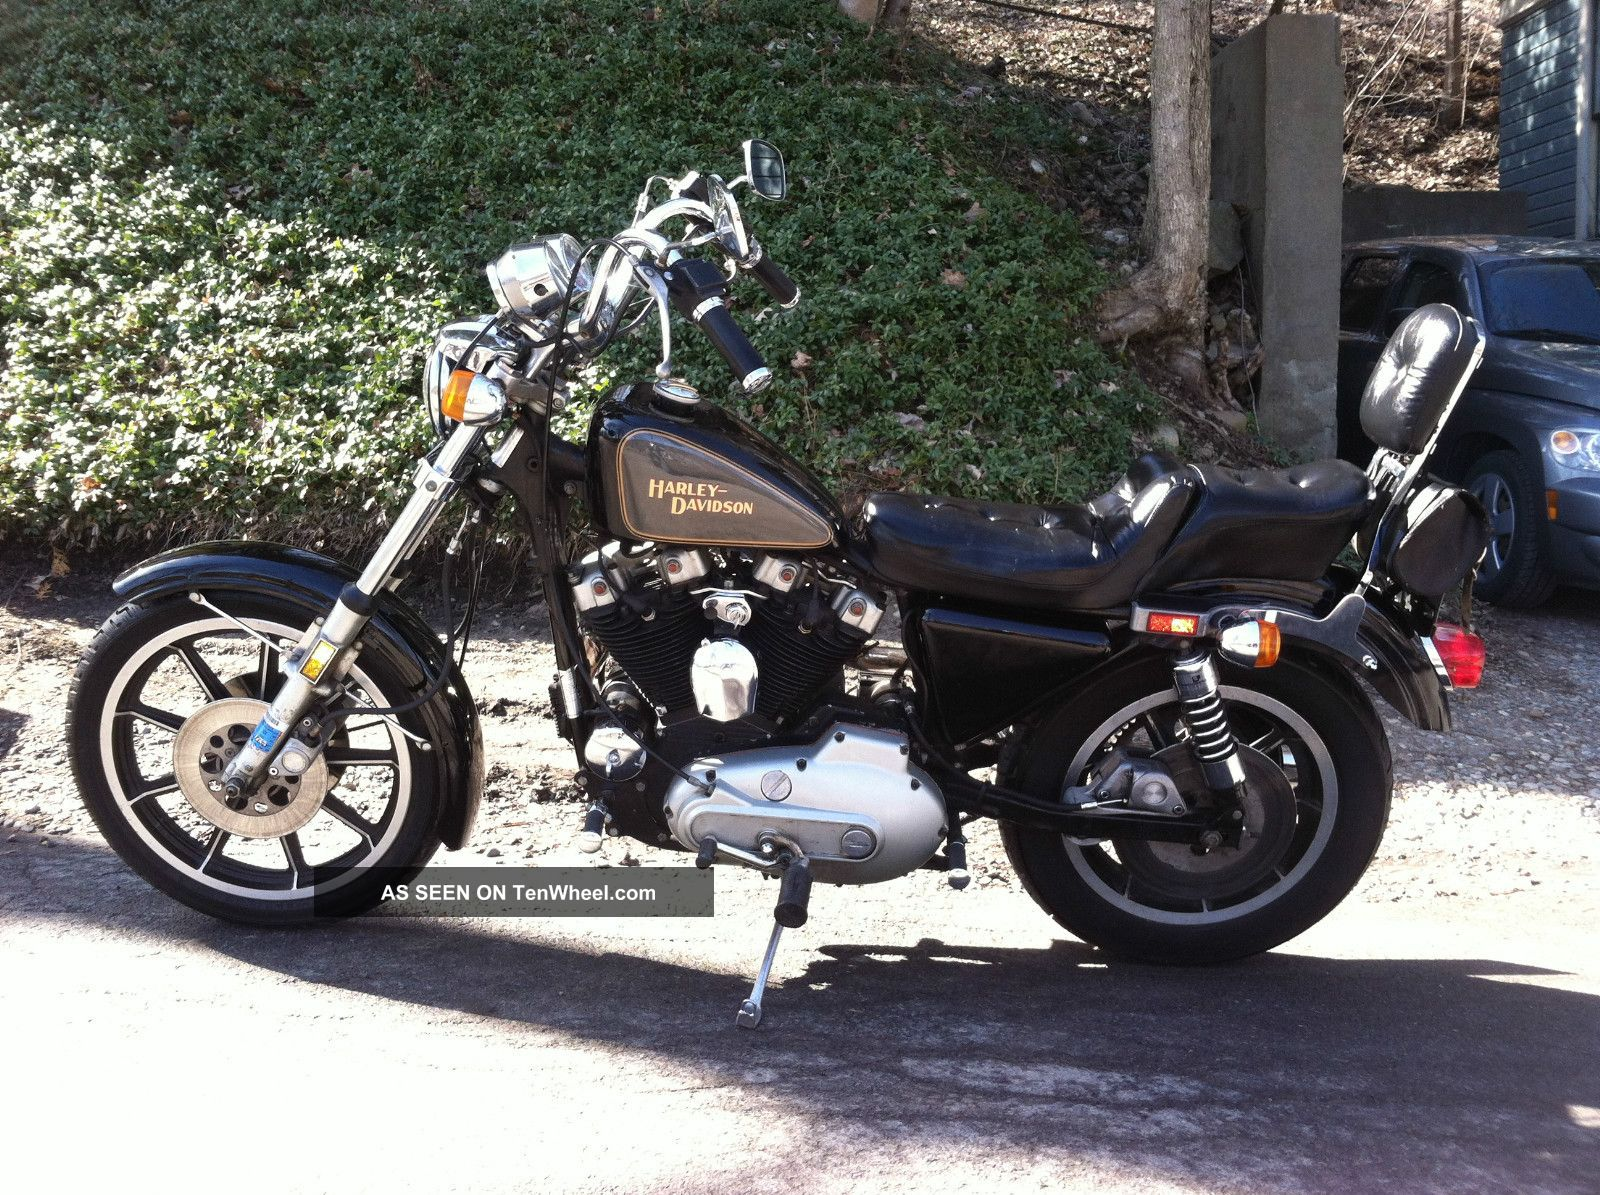 83 Sportster Wiring Diagram Will Be A Thing 1979 Harley Images Gallery